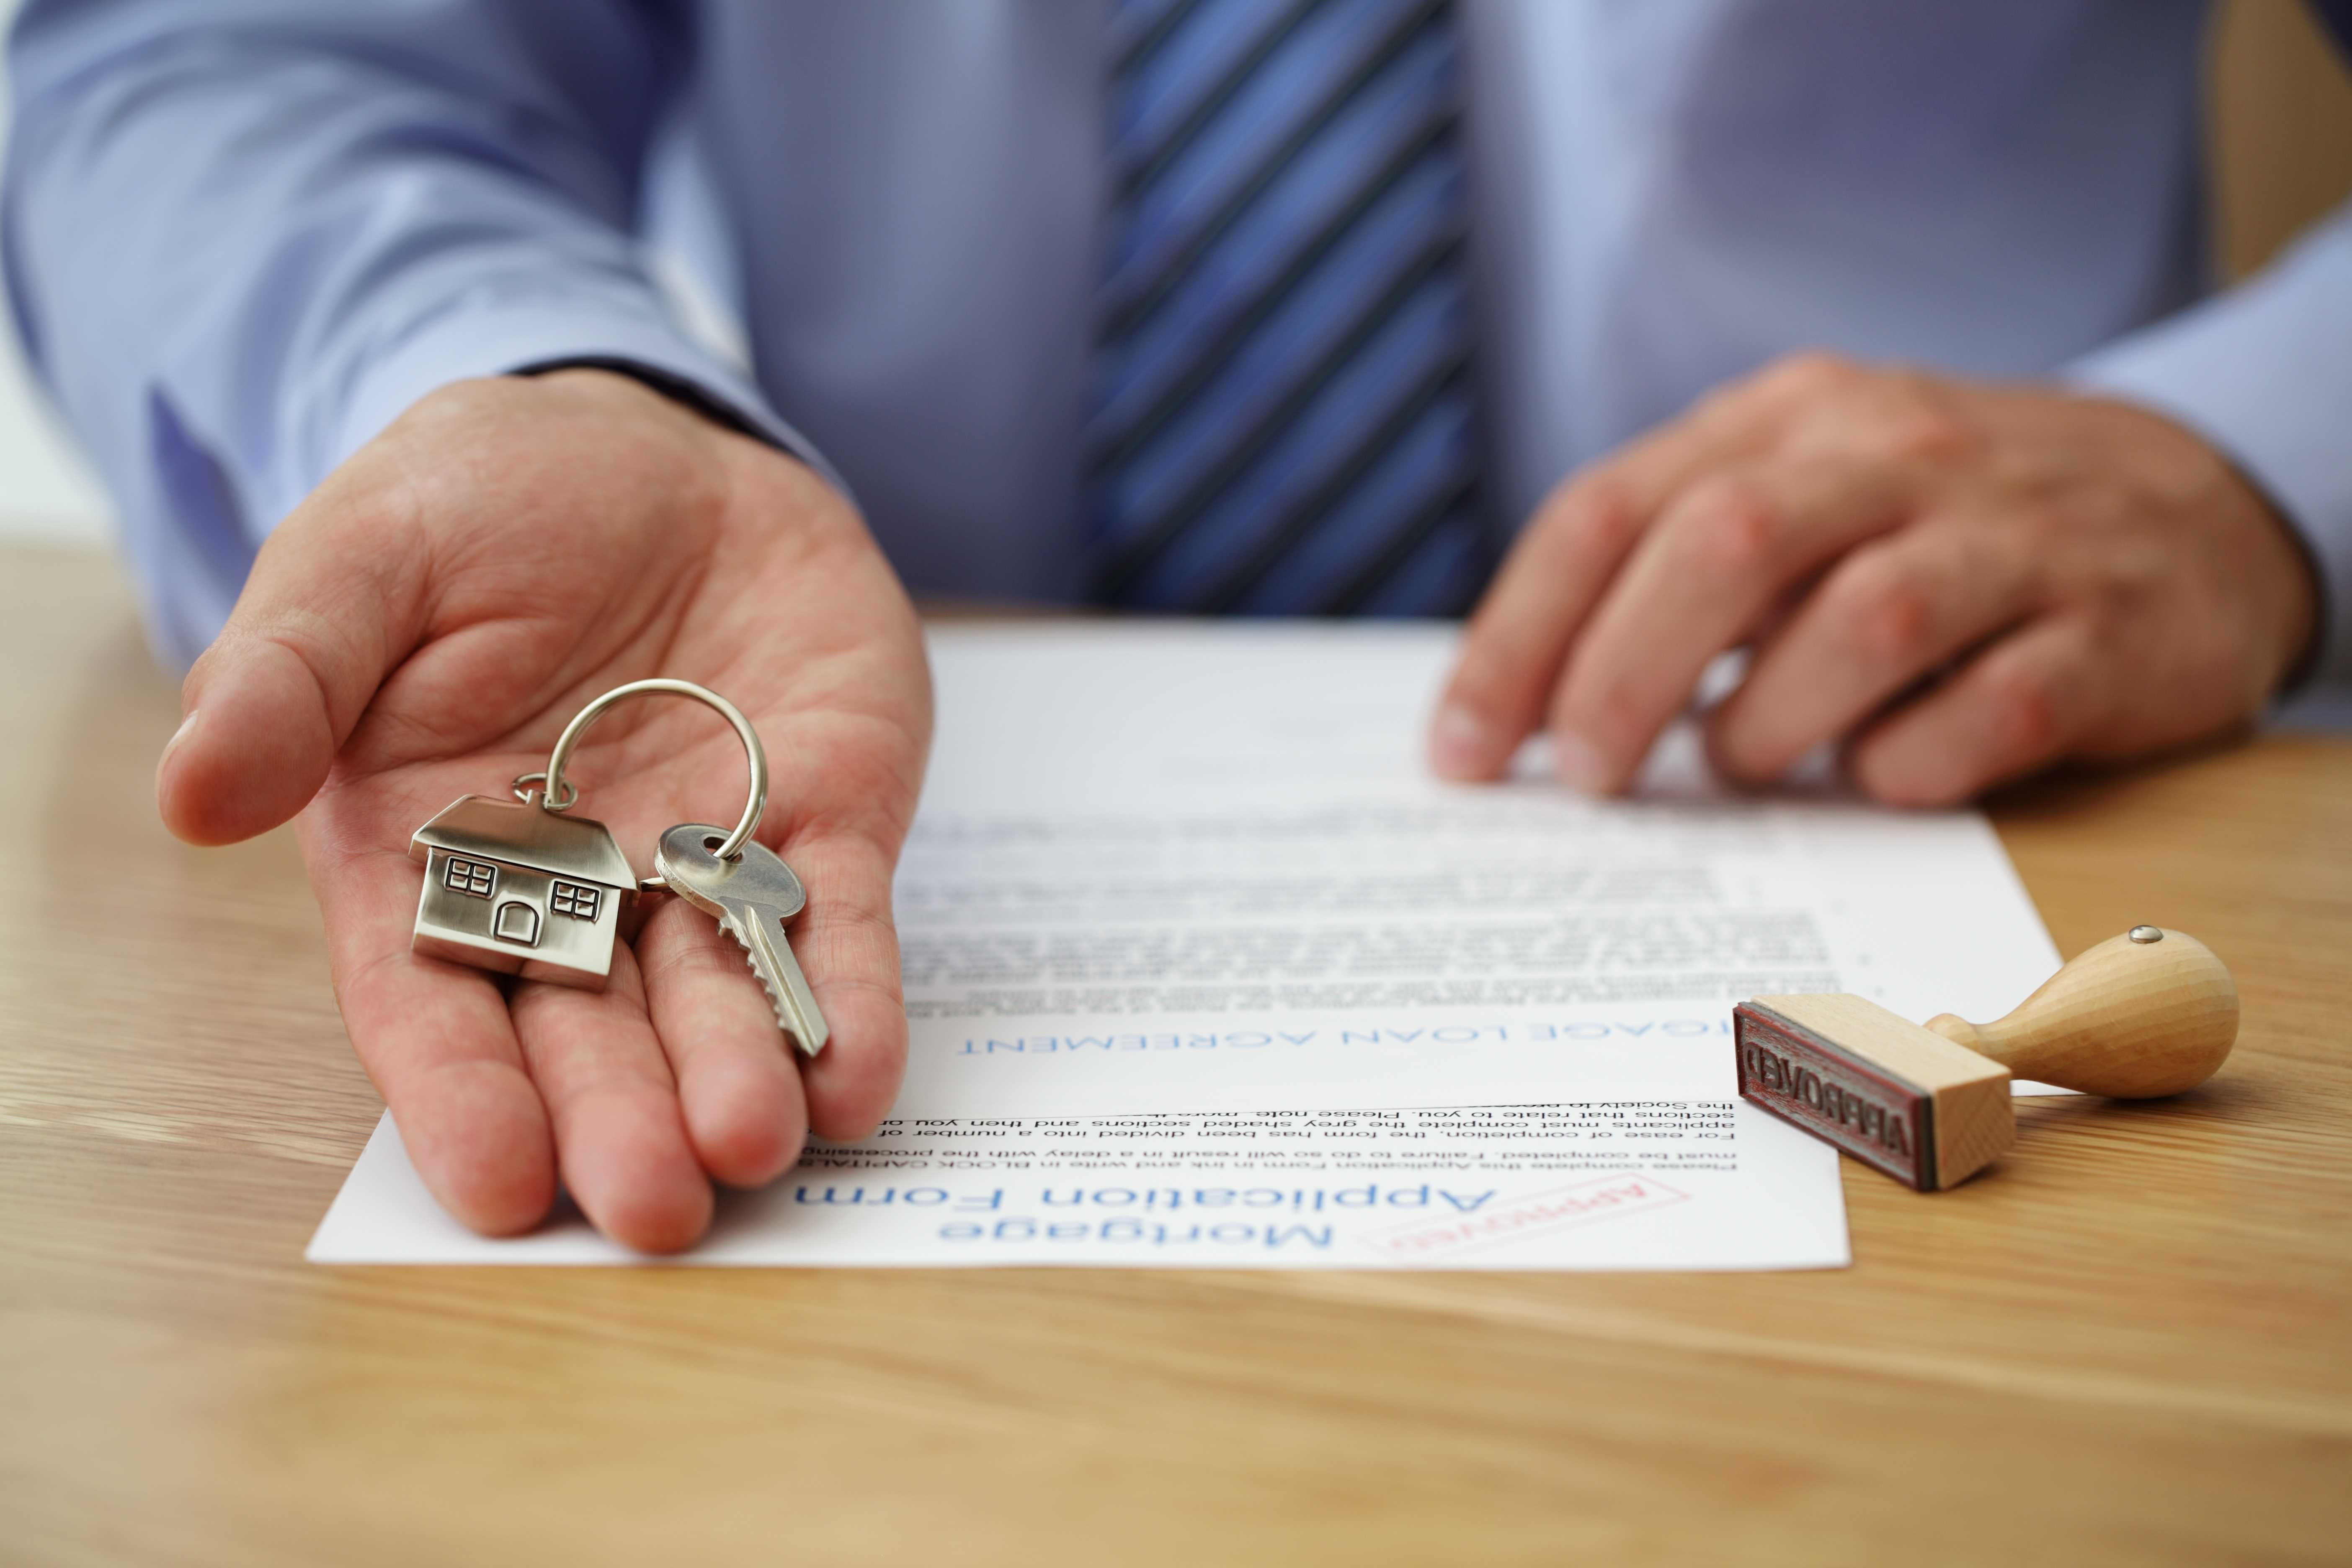 Mortgage Application Form and House Keys